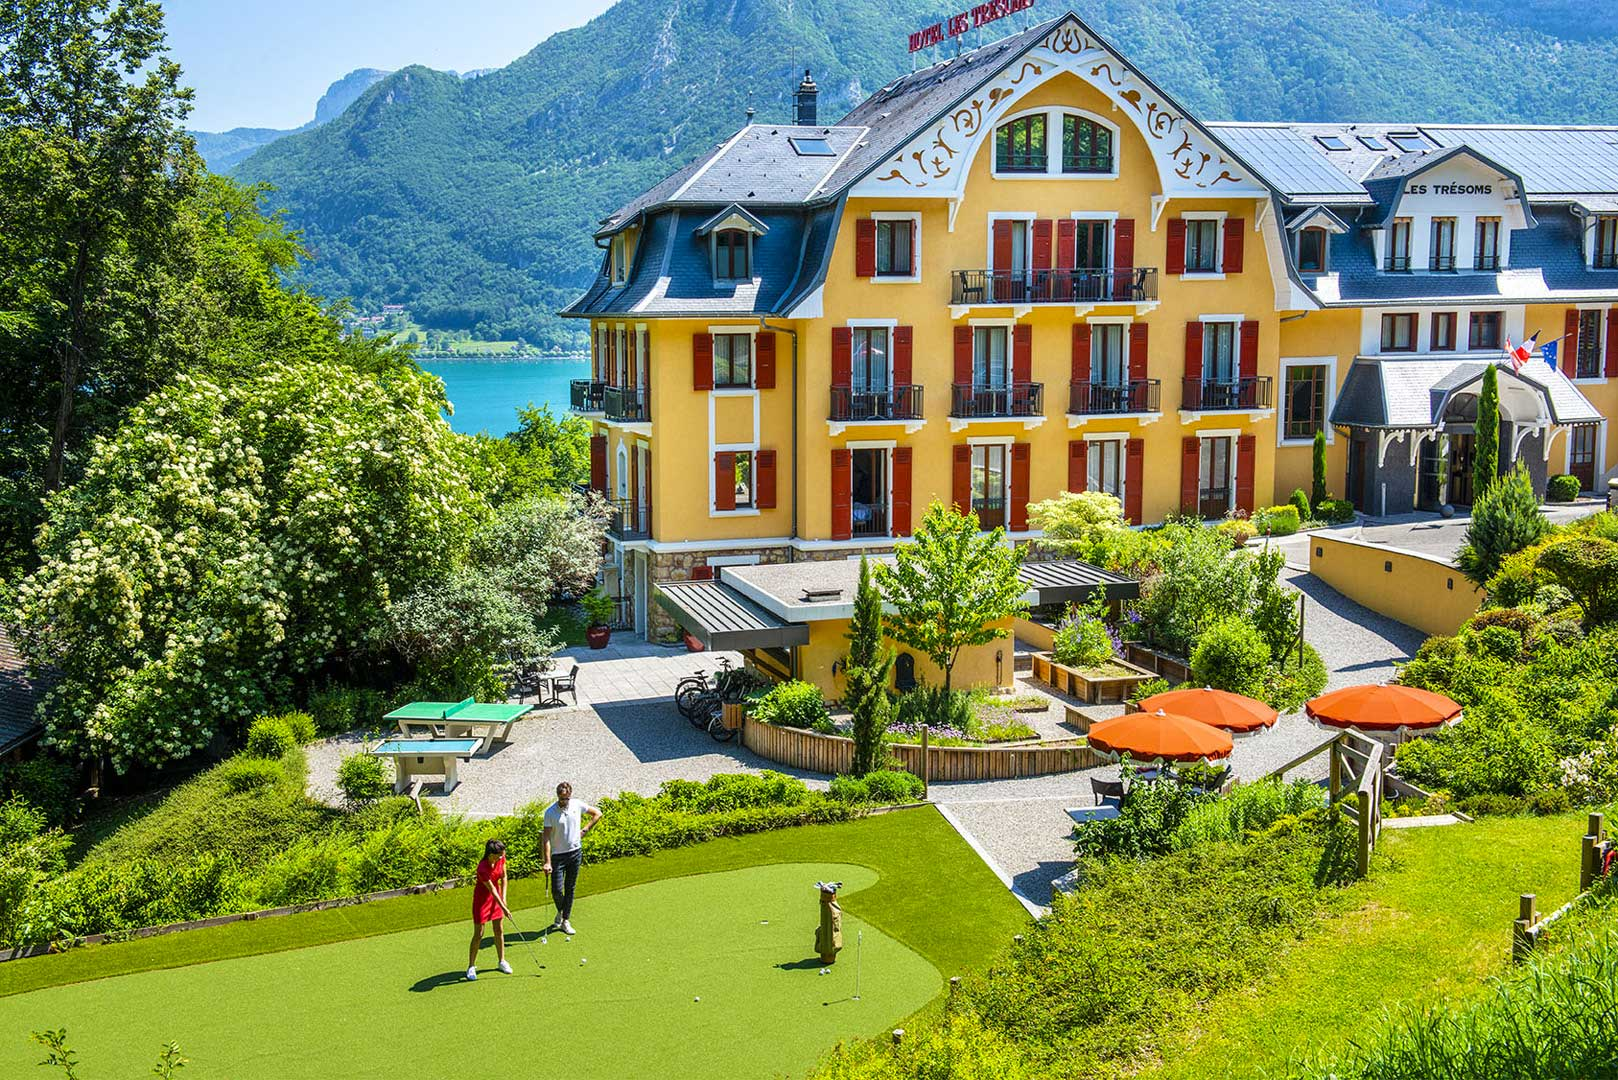 343/activite/hotel-tresoms-lac-annecy-putting-green-golf.jpg